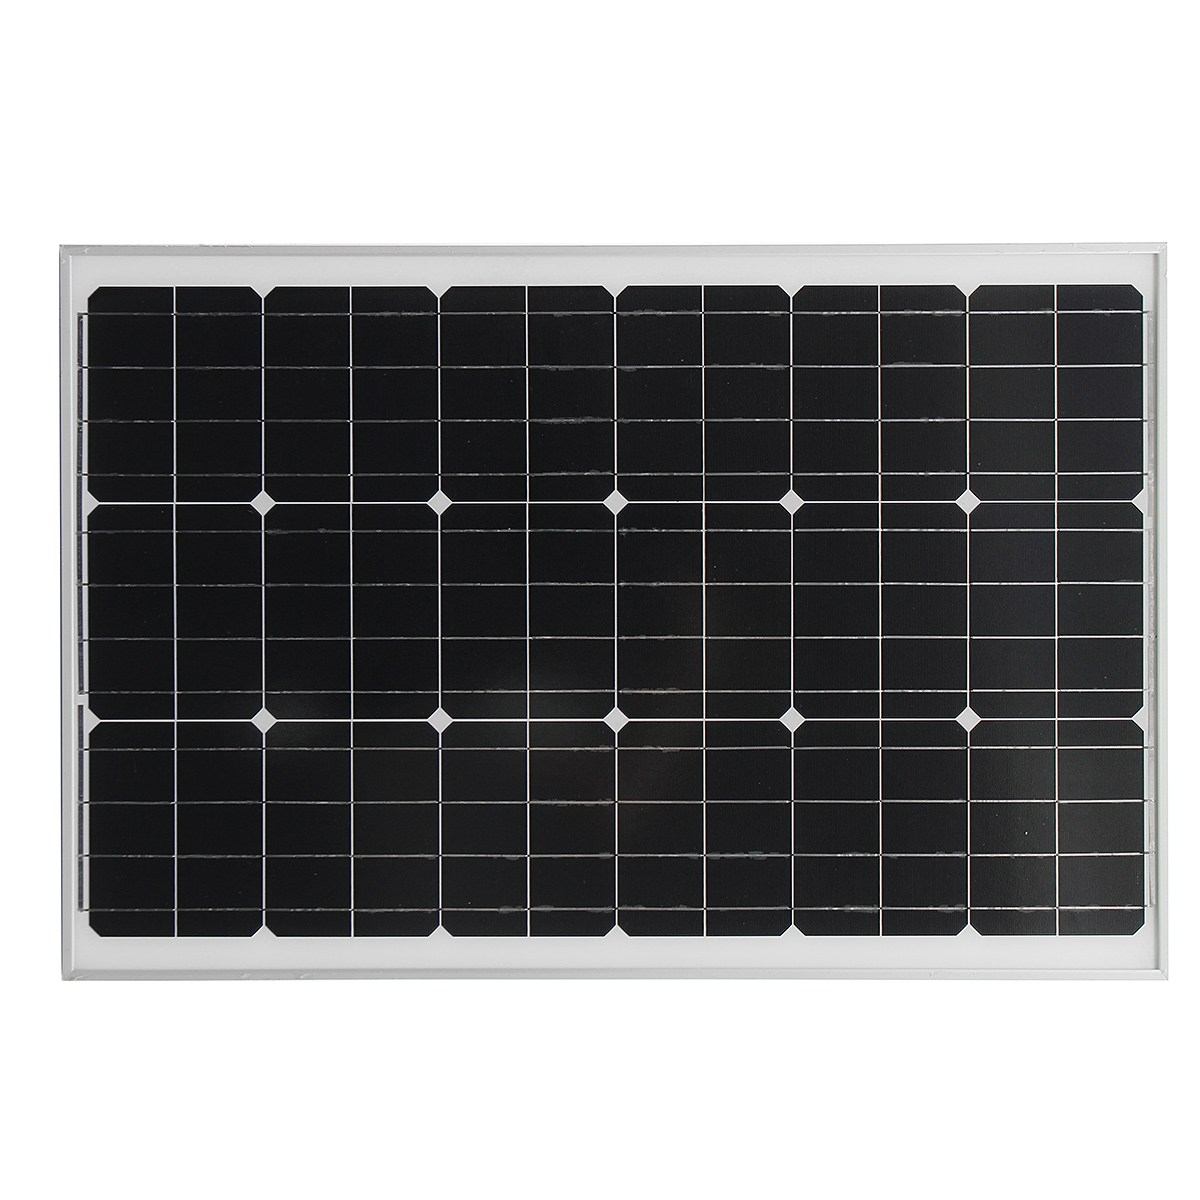 LEORY 60w 18v Solar Panel Monocrystalline Silicon High Conversion Rate Solar System Supply With Glass Bearing Plate high conversion rate and high efficiency output 18v 100w monocrystalline solar panel semi flexible diy solar module for boat rv